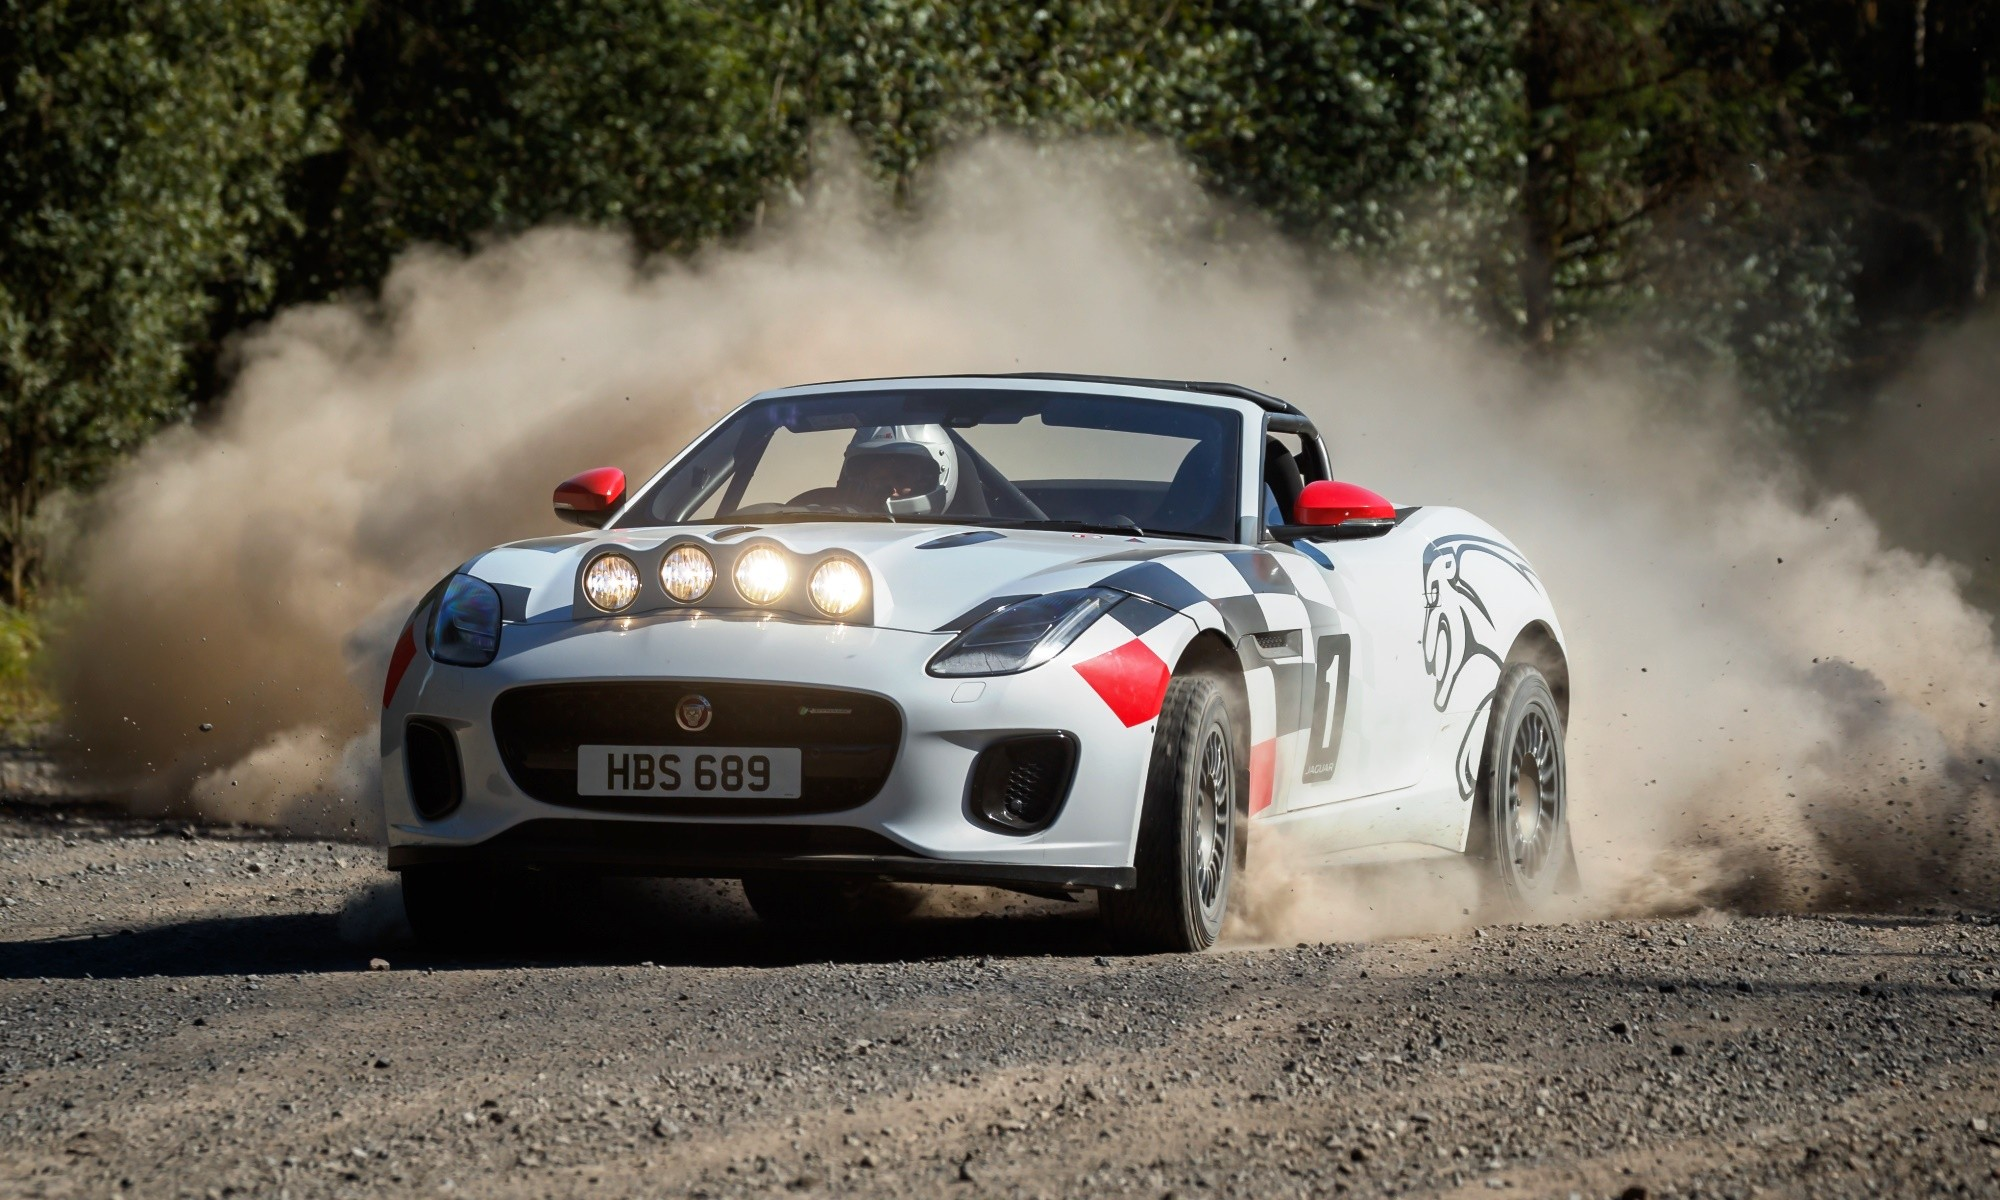 Jaguar Rally Car on dirt